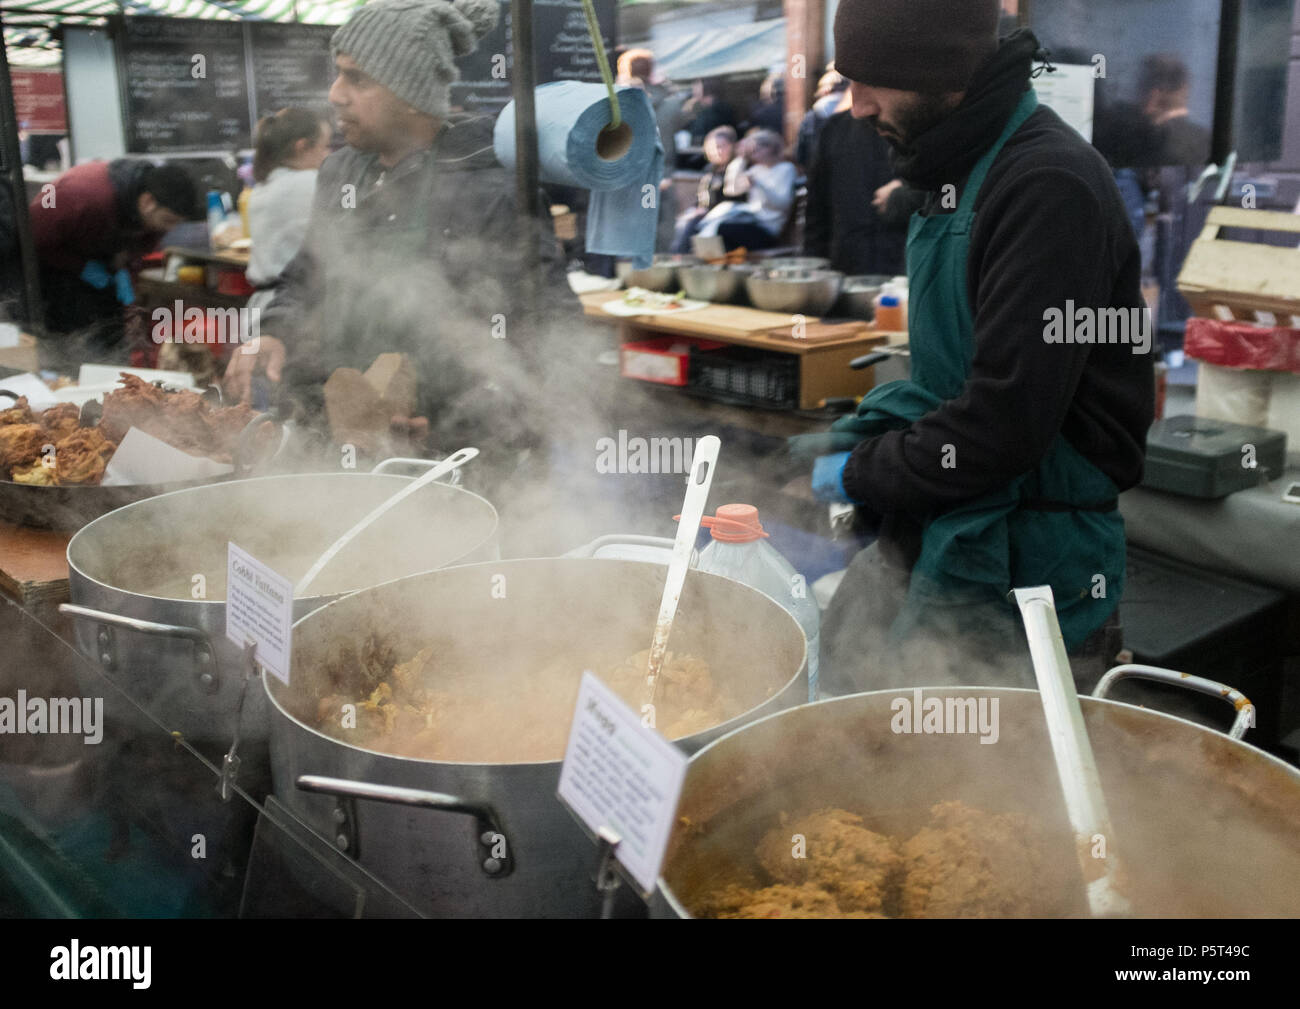 Delicious Steaming hot street food, Variety of Curries the weekly Broadway Street Market, Hackney, London, England, Europe. Stock Photo